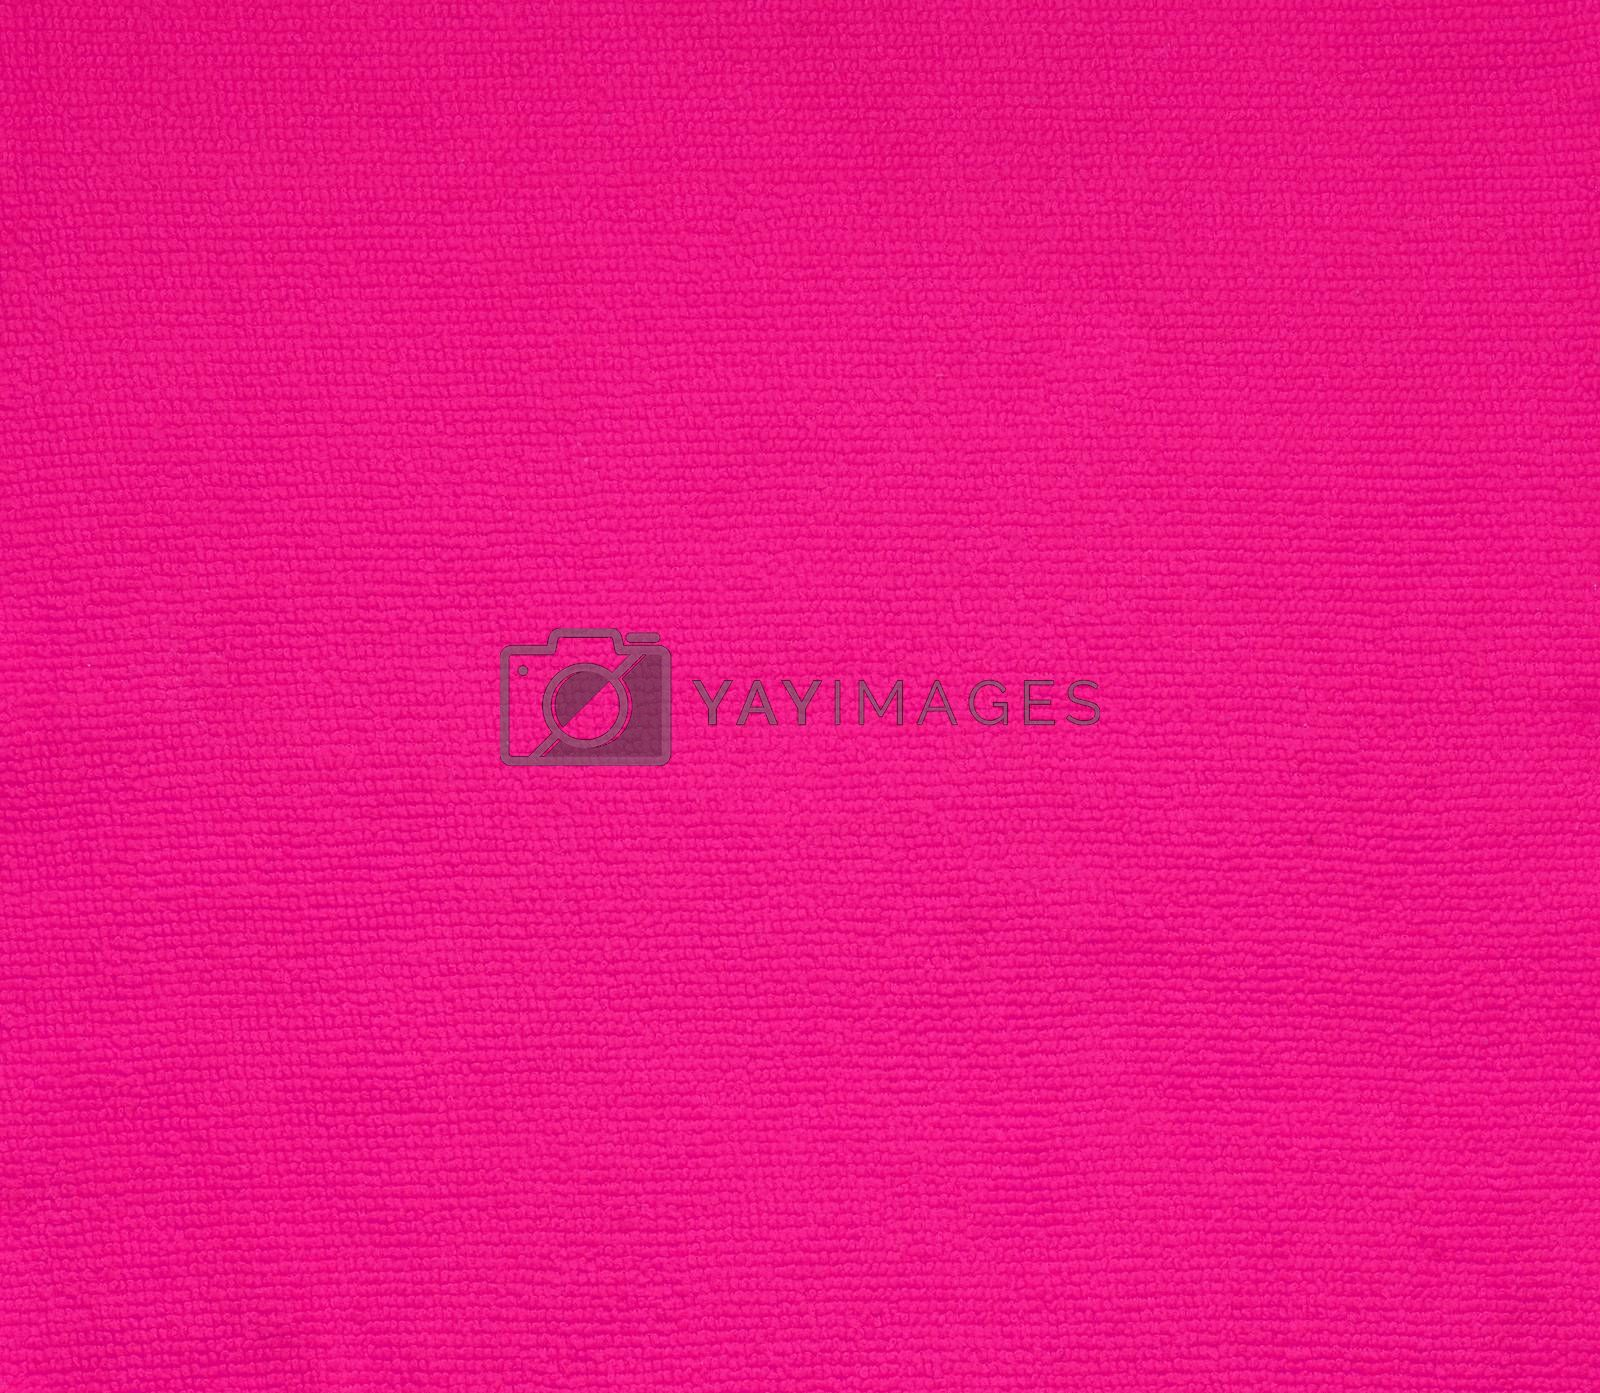 surface pink fabric texture for background